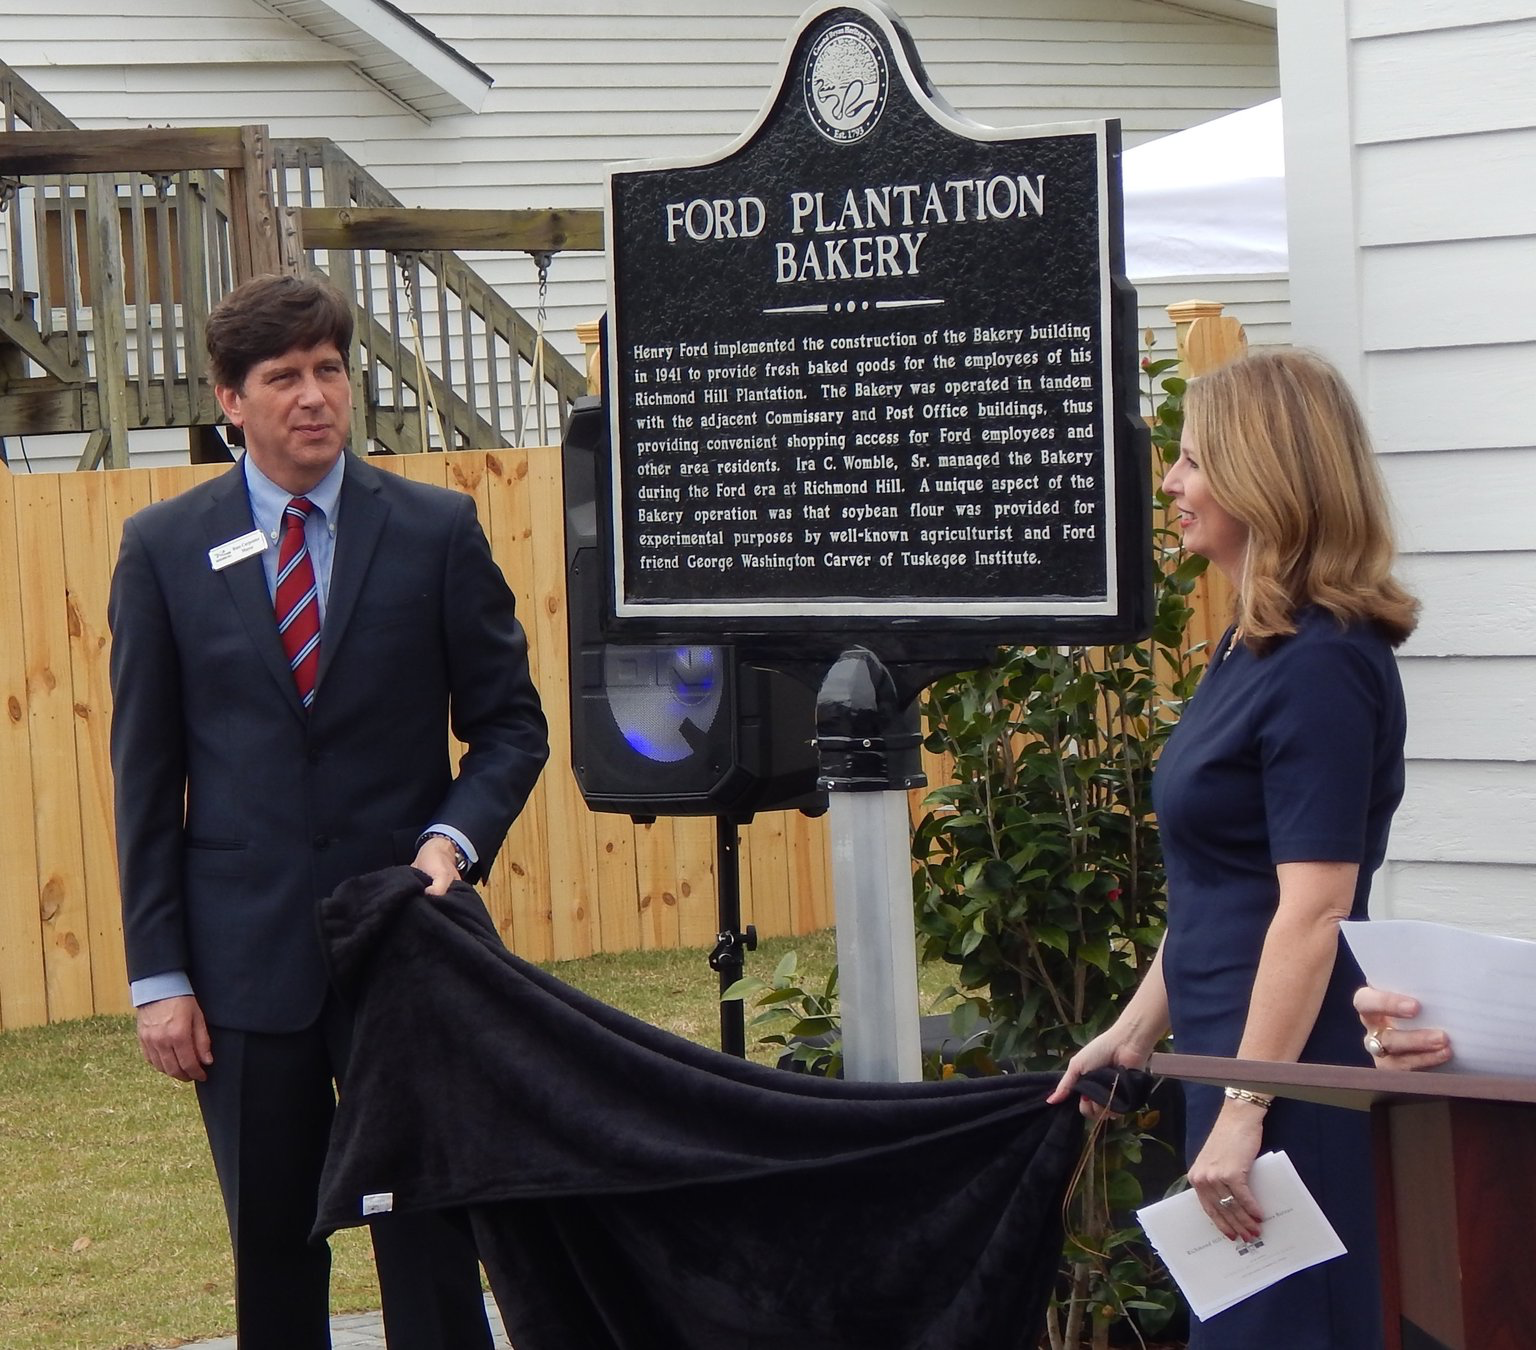 Mayor Russ Carpenter (left) and Christy Sherman of the CVB unveil the historical marker. Photo by Mark Swendra.